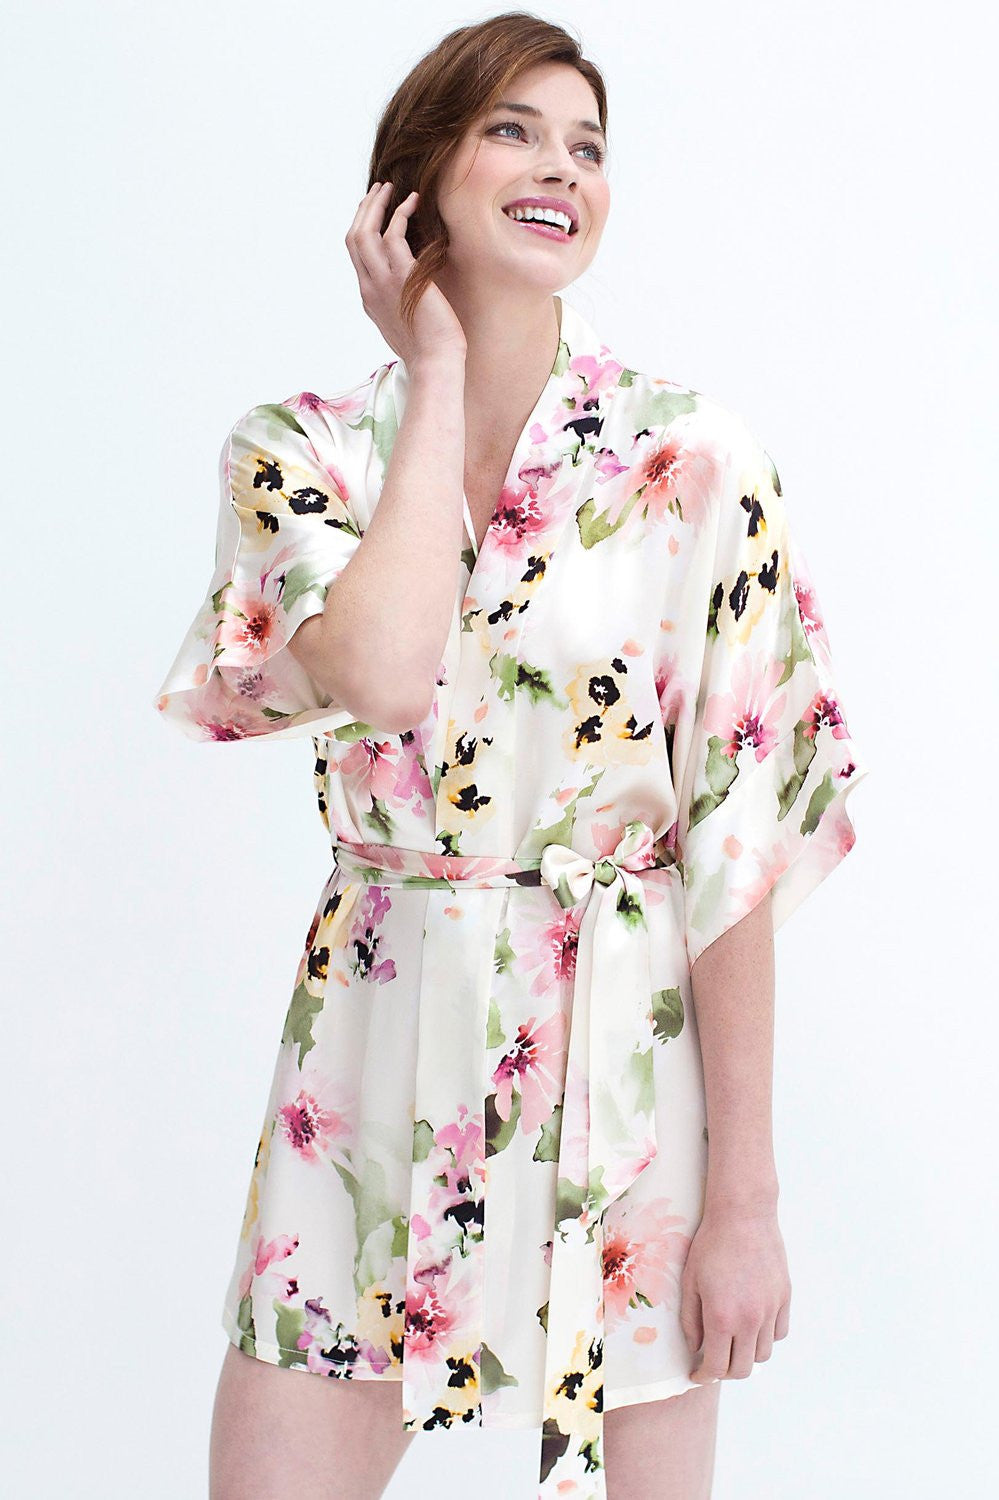 Samantha Silk Kimono Robe in Watercolor Dreams - style 300wp